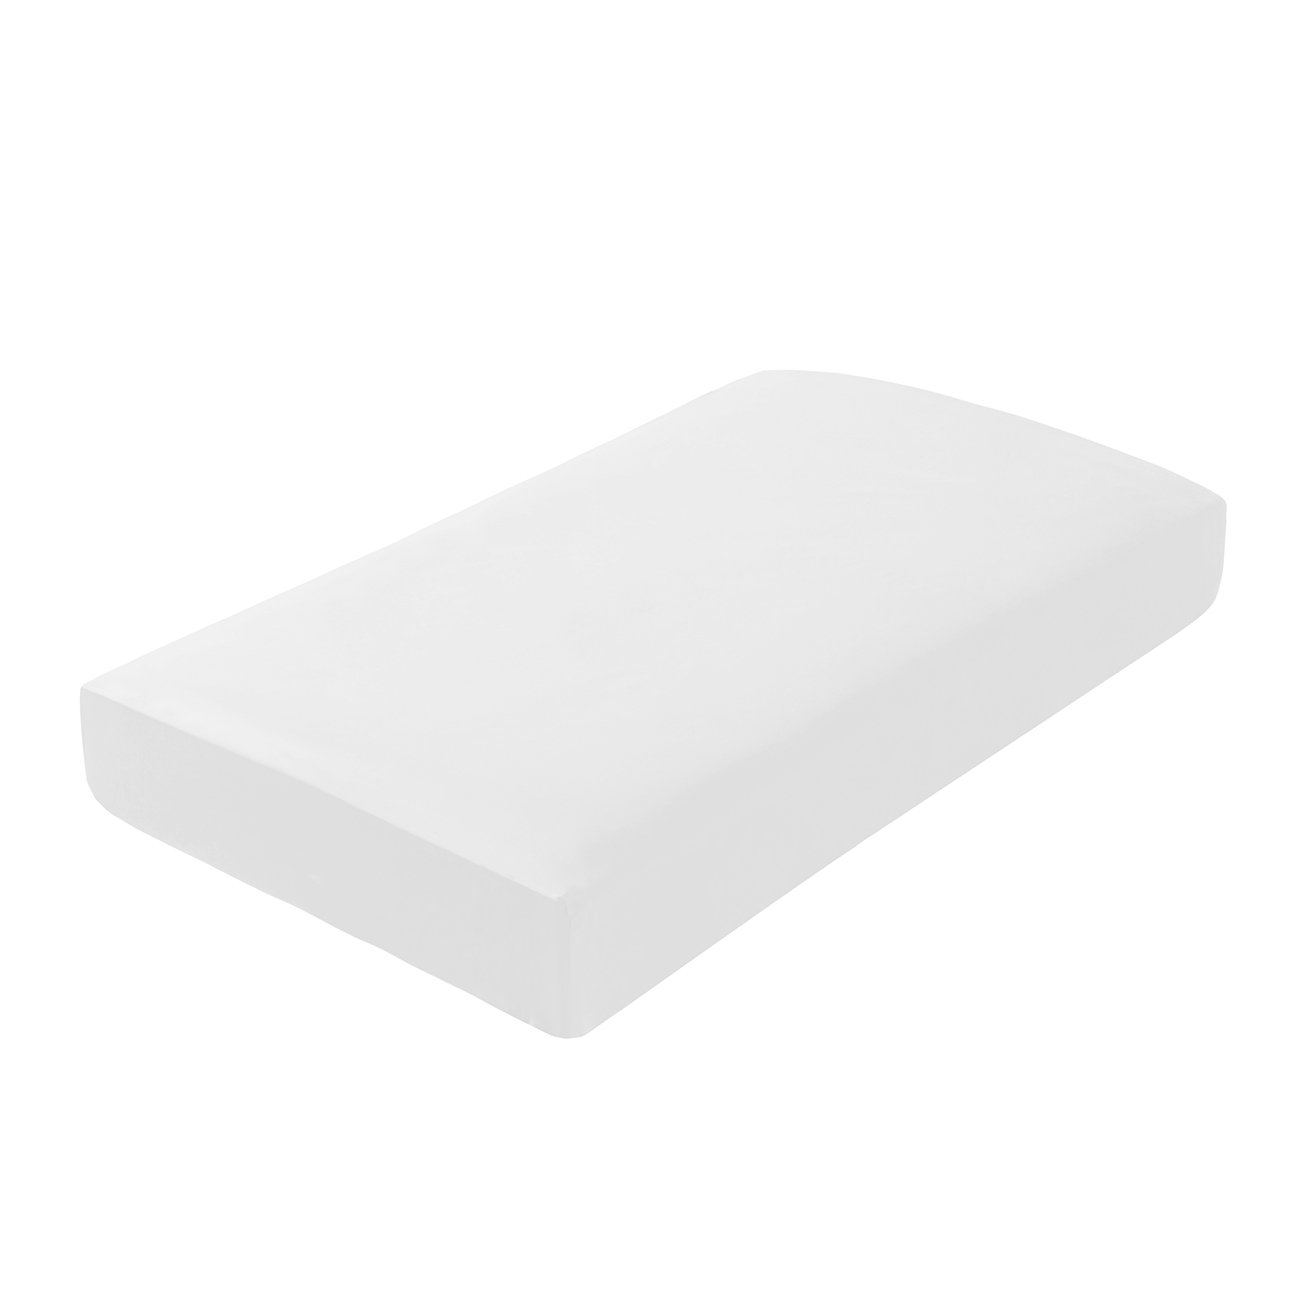 PHF Cotton Crib Fitted Sheet 52X28X8 Sateen Weave Silky Soft Fits Standard Crib /& Toddler Mattress Pack of 2 White